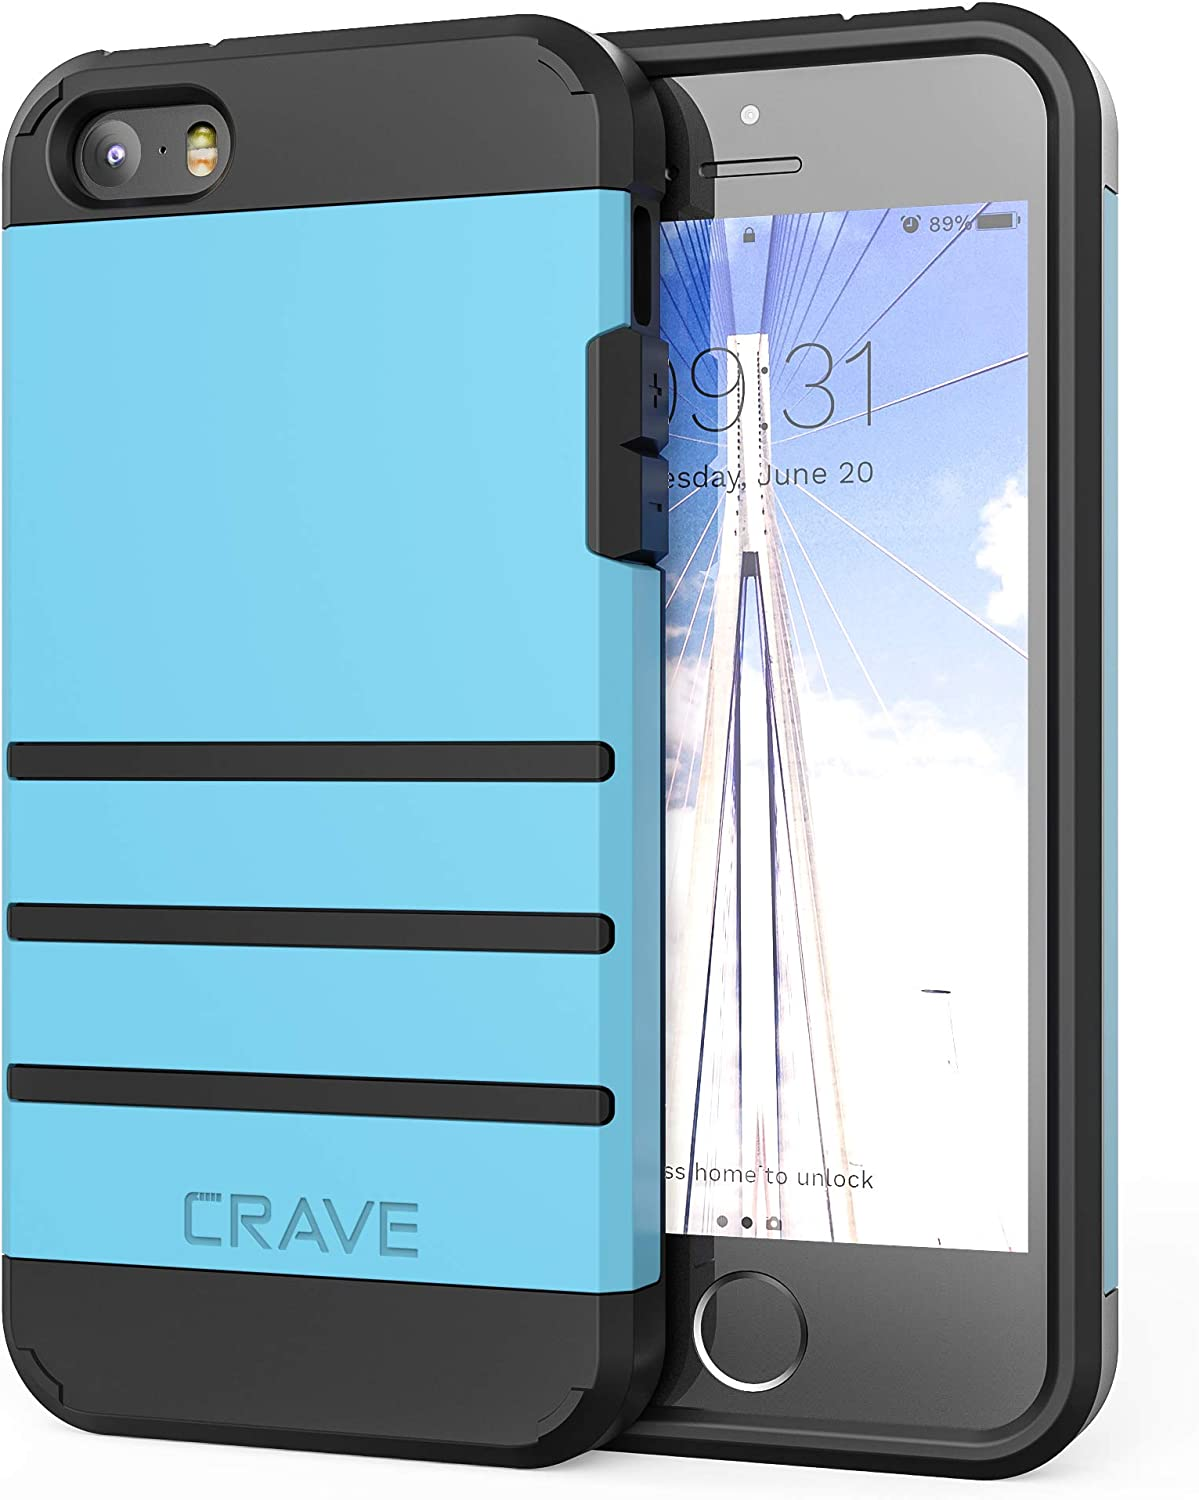 iPhone SE [2016](1st gen) Case, iPhone 5s Case, Crave Strong Guard Protection Series Case for iPhone 5 5s SE - Sky Blue